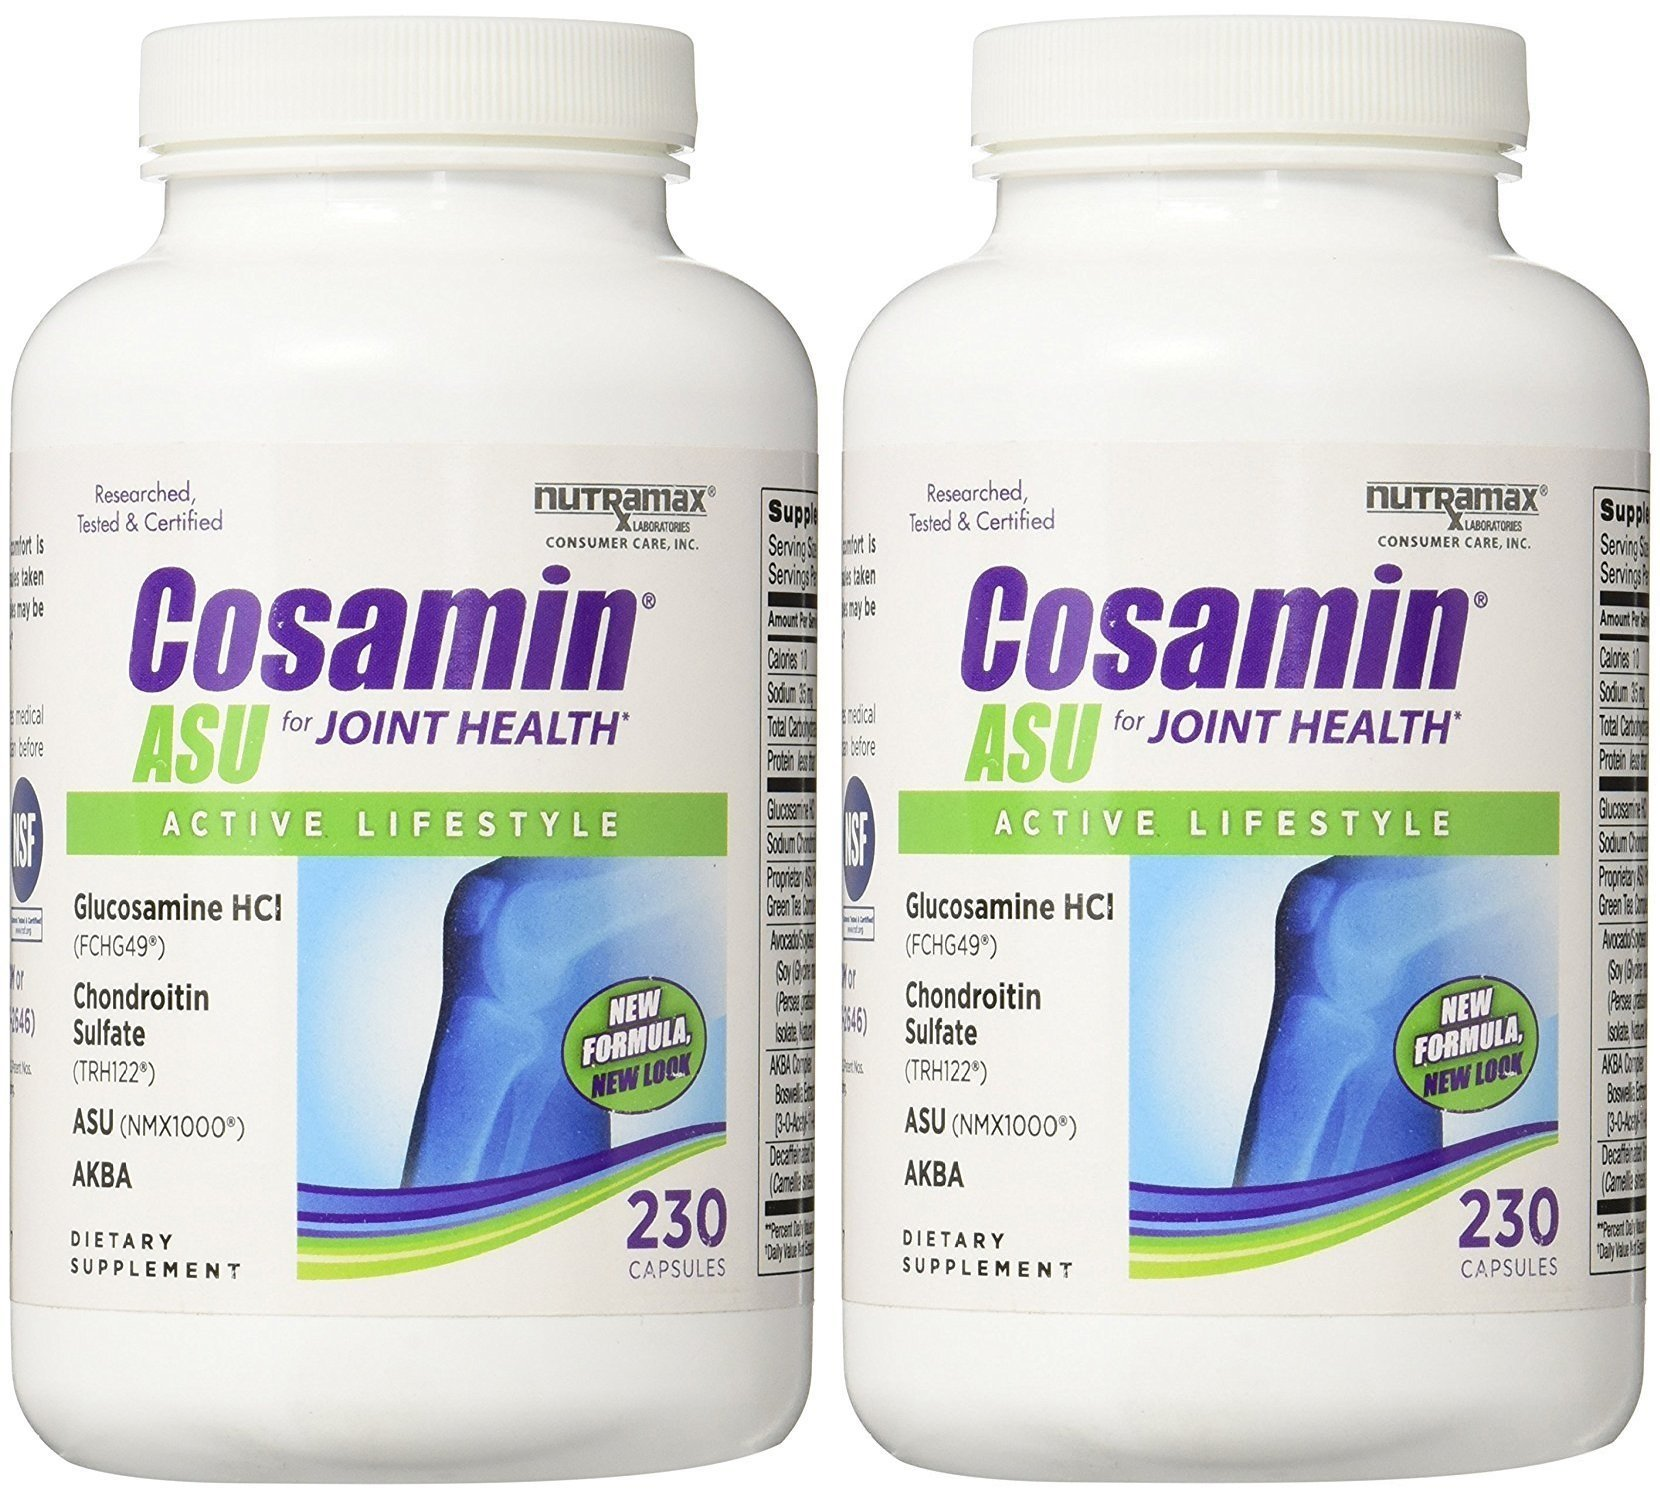 Cosamin ASU Joint Health Active Lifestyle Glucosamine HCl Chondroitin Sulfate AKBA 230 capsules (2...